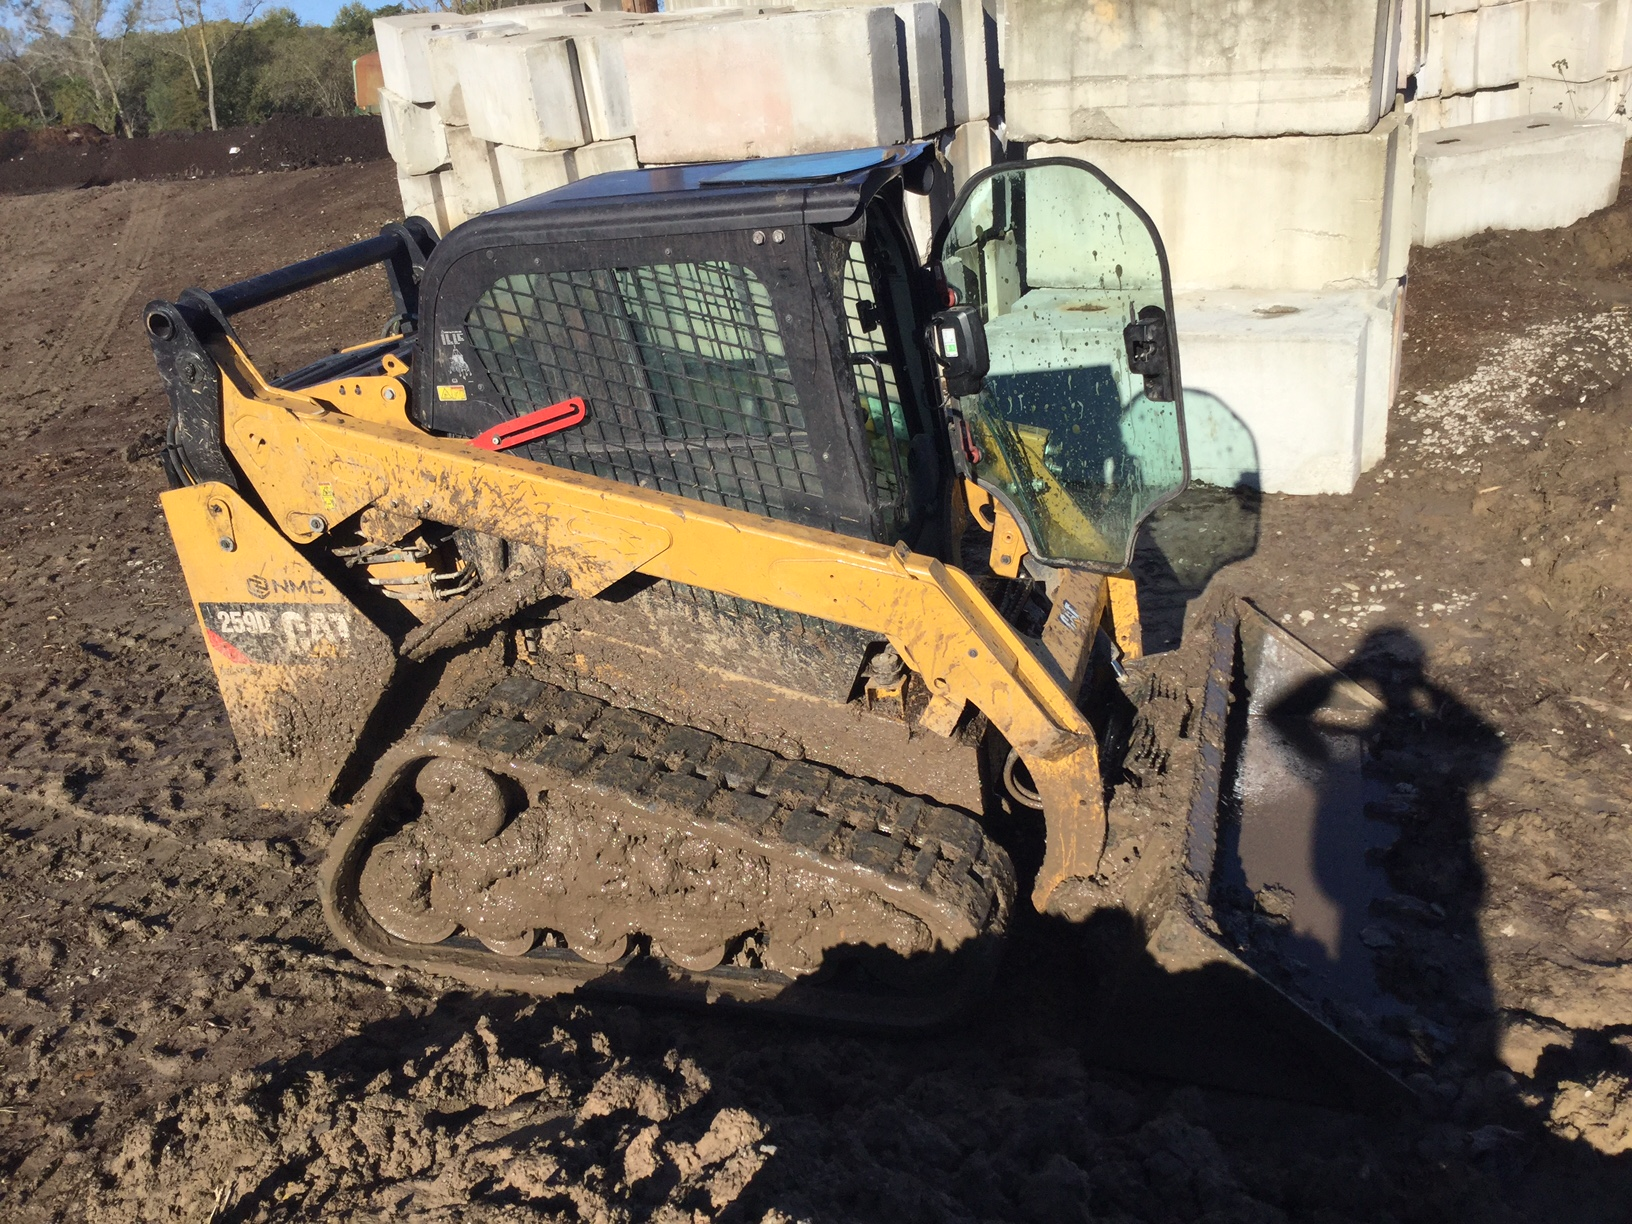 Last but not least (except in size) the skid-steer. This is a familiar one, it can zip around, carry modest loads, it can hold a fork lift or a bucket, I use it to shave off the edges of windrows if they're too wide. It has the most variety of uses, like a swiss army knife.